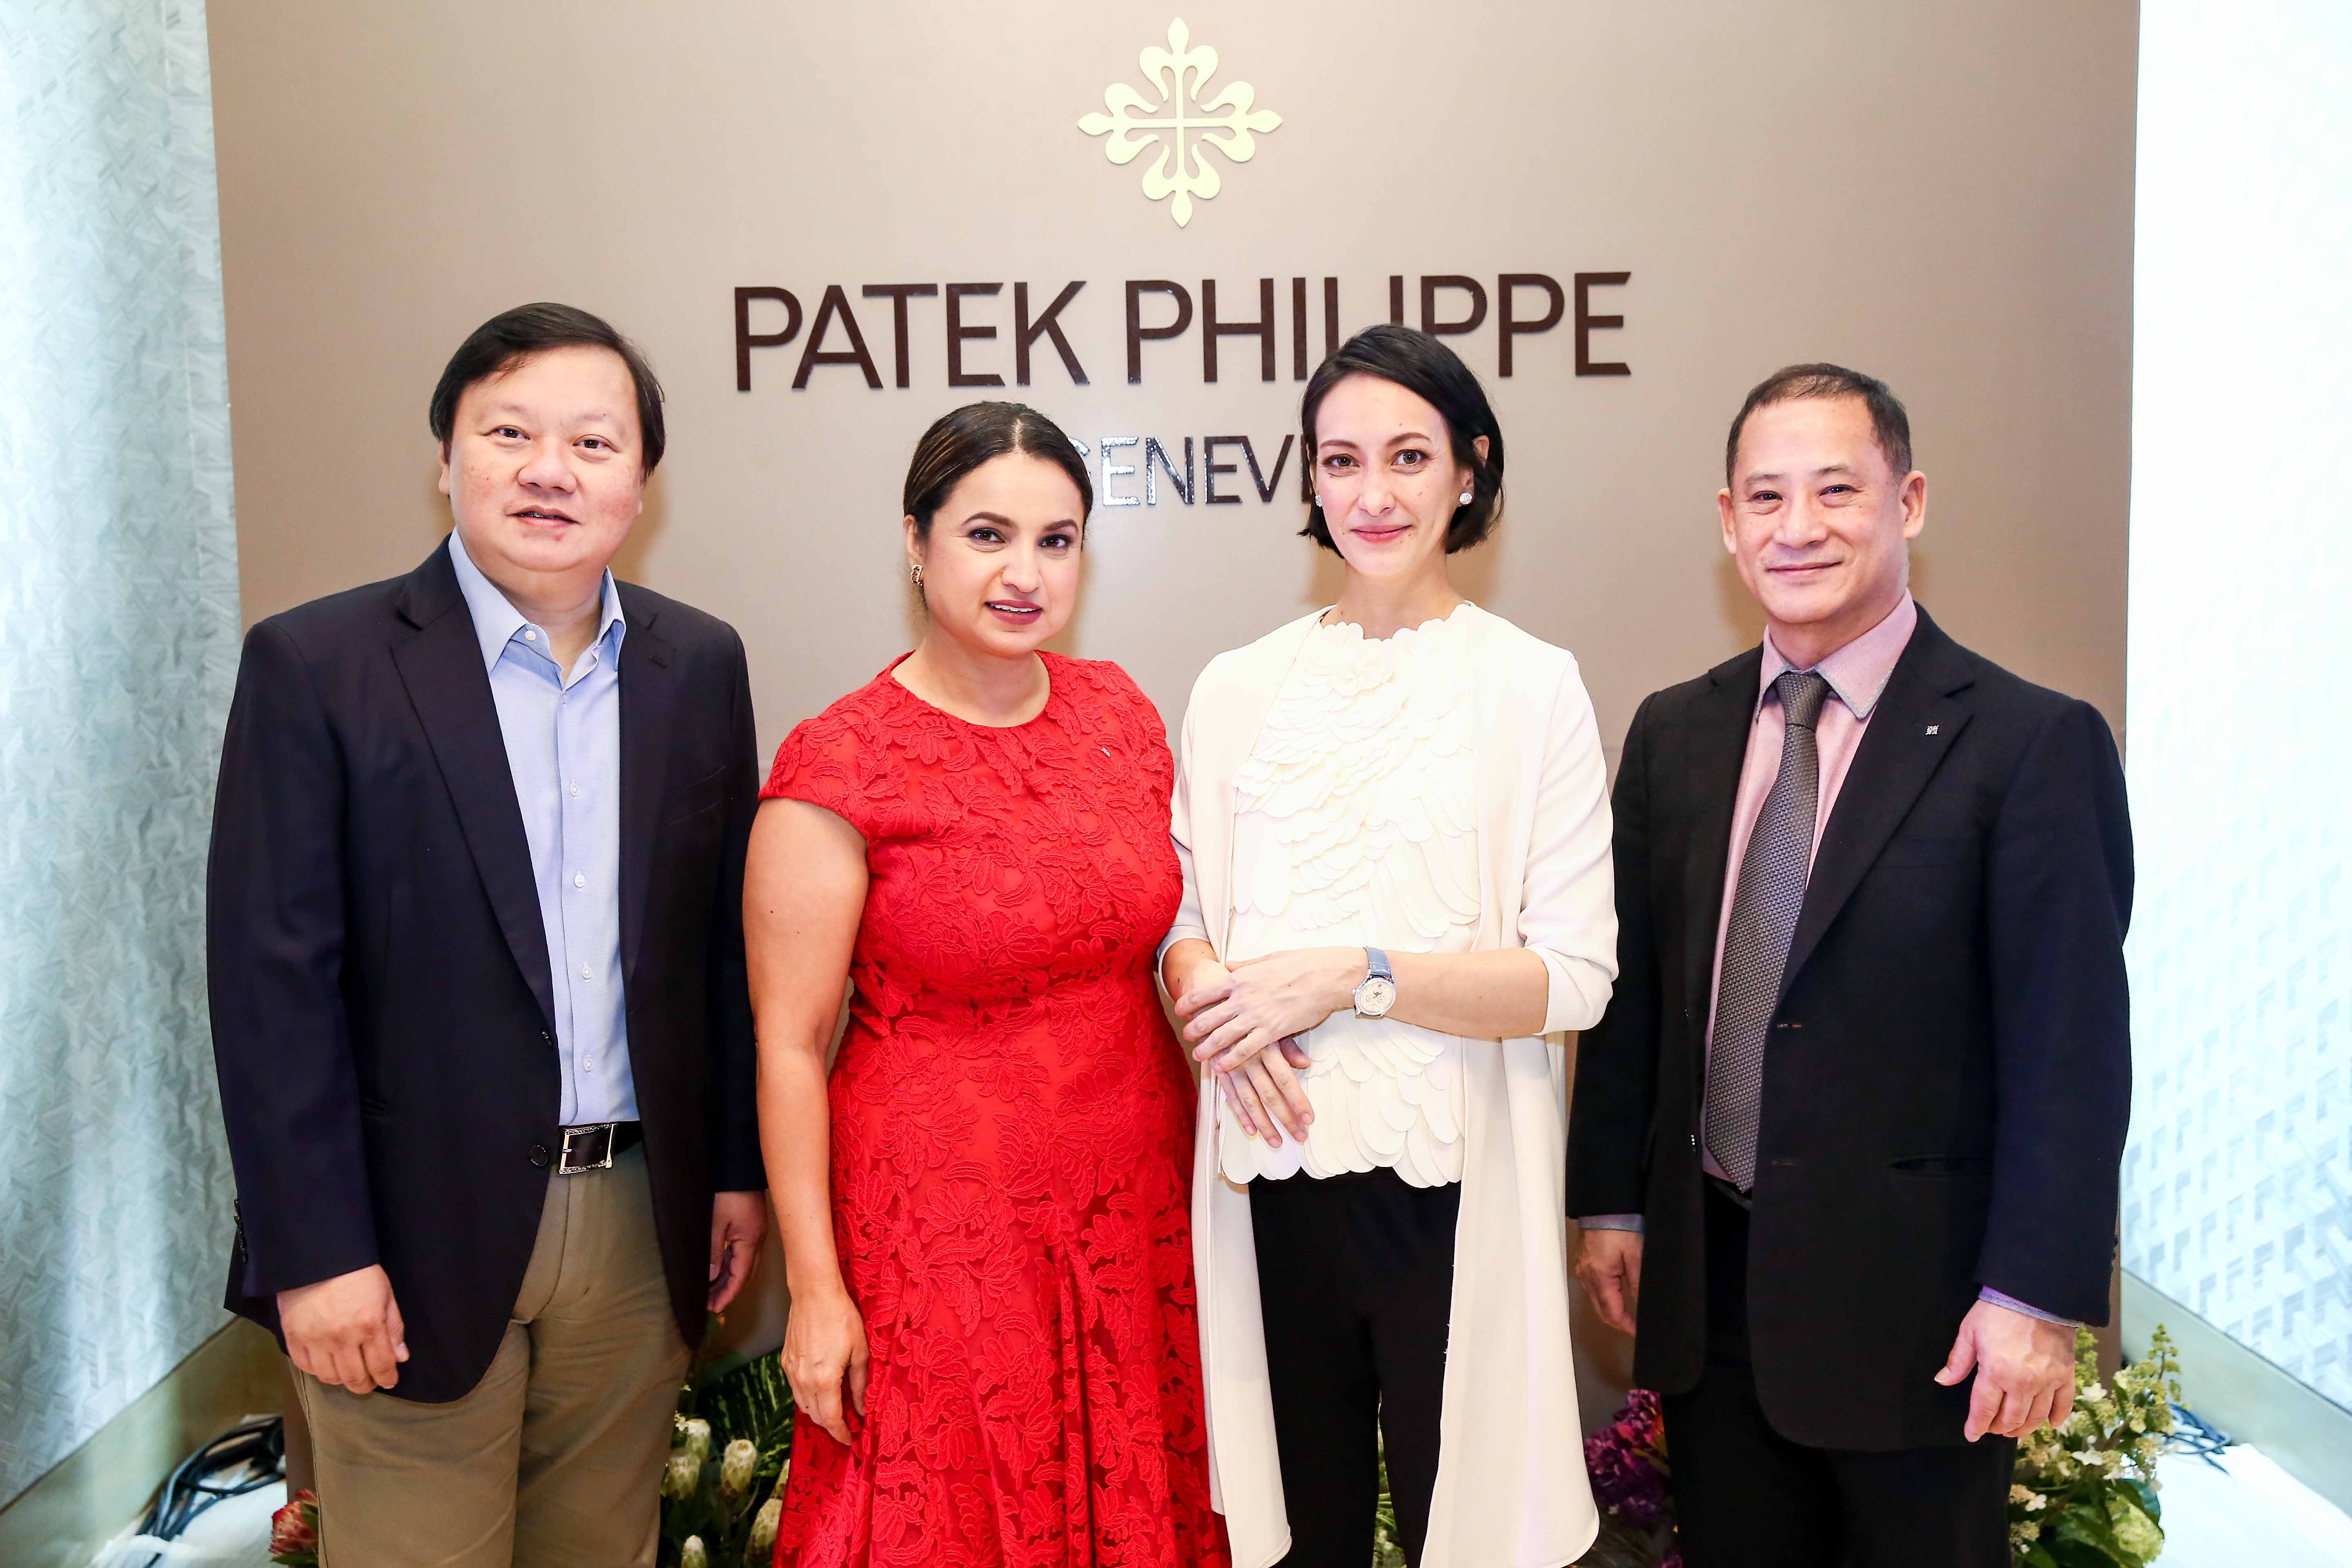 Ivan Yao with Deepa Chatrath, Filipina bag designer Bea Valdes and Patek Philippe regional sales manager David Chan.